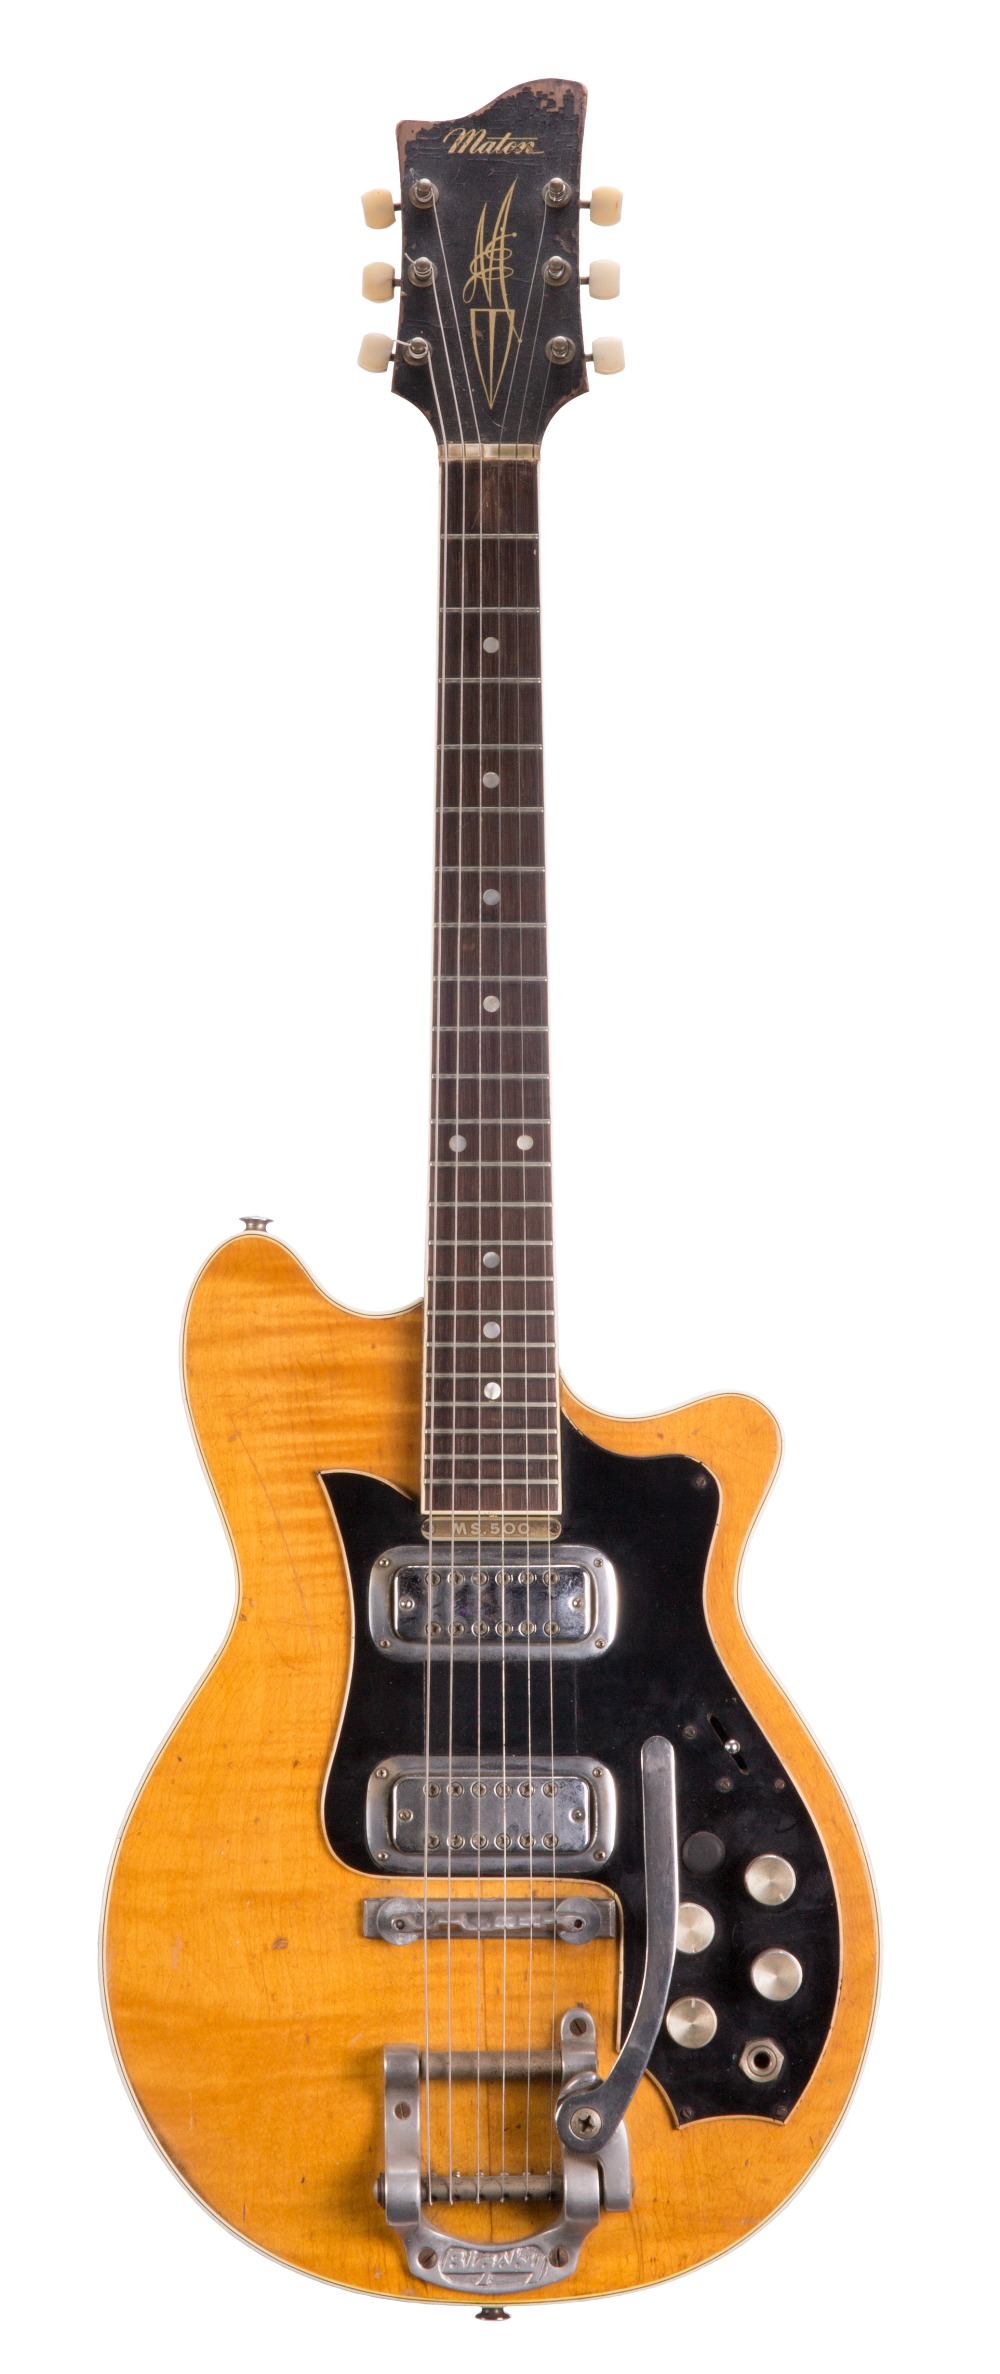 Lot 189 - George Harrison - Maton Mastersound MS-500 electric guitar, stage-played with The Beatles during